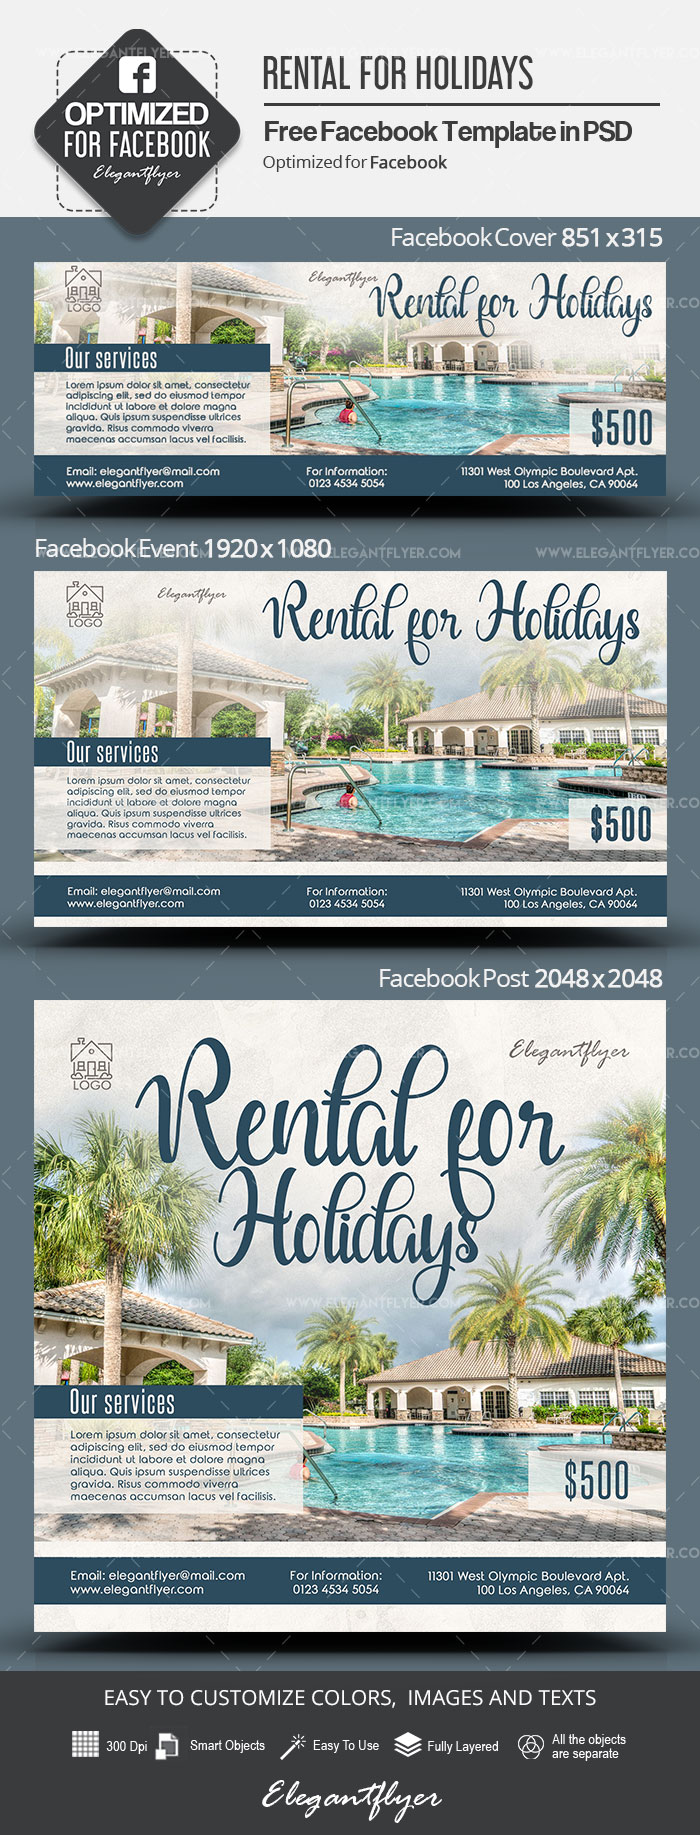 Rental for Holidays – Free Facebook Cover Template in PSD + Post + Event cover